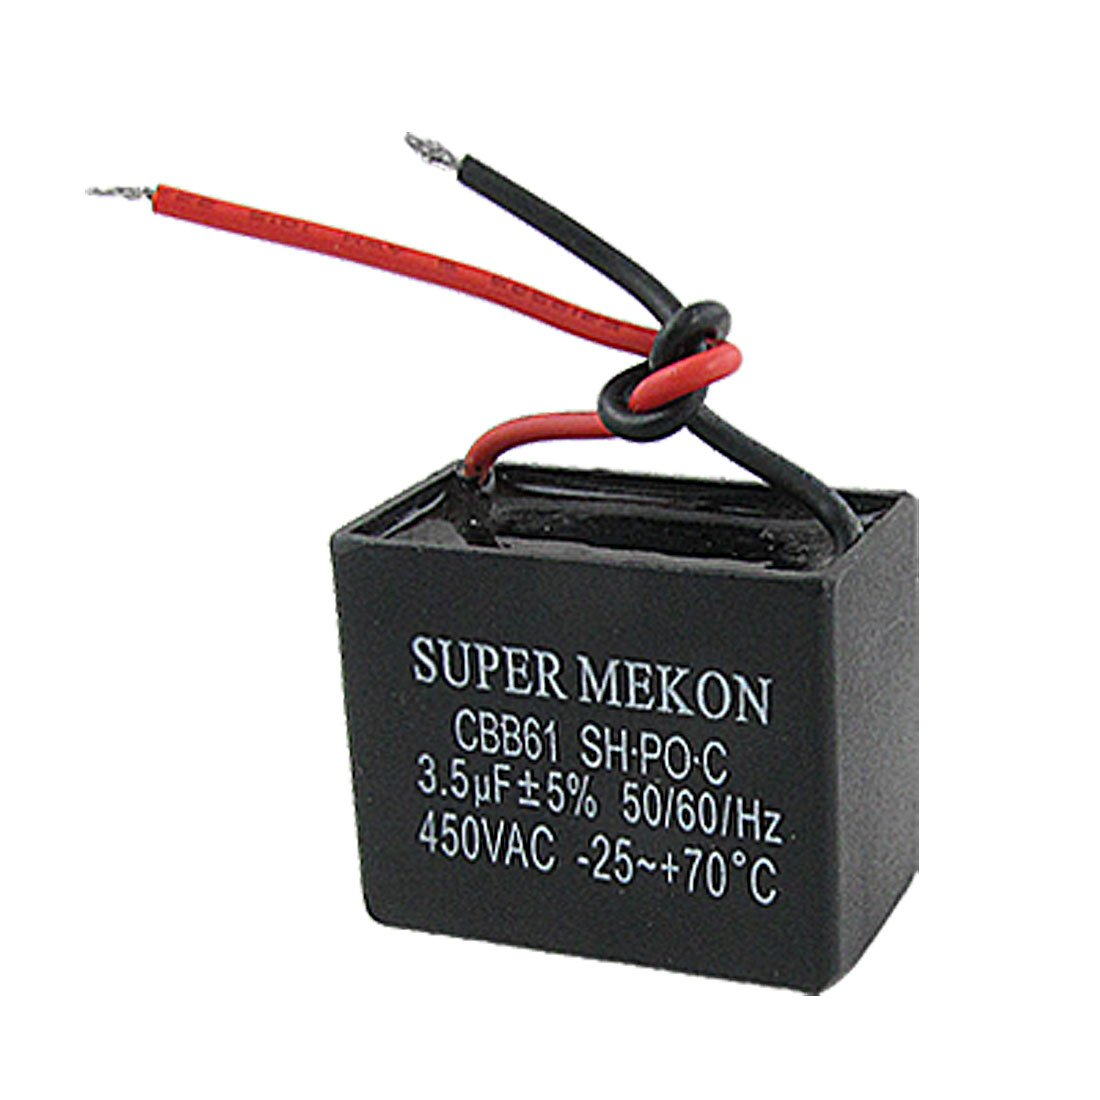 B3 3.5uf 450VAC 50/60Hz 2 Wire Fan Capacitor CBB61 3.5MFD ...